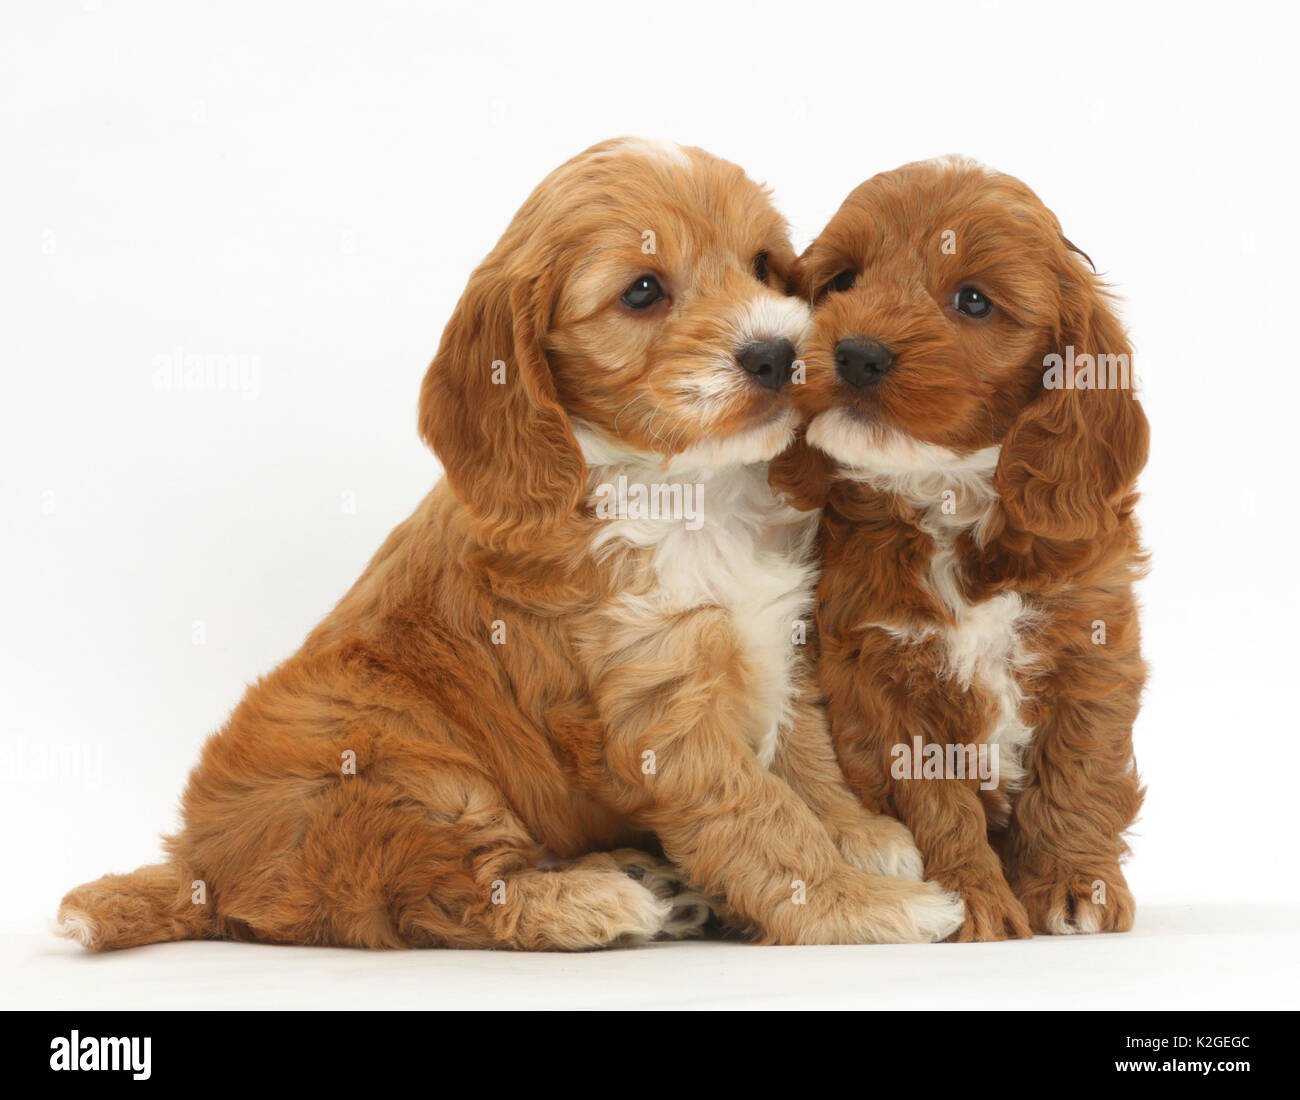 Two Cockapoo puppies, Cocker spaniel cross Poodle. - Stock Image